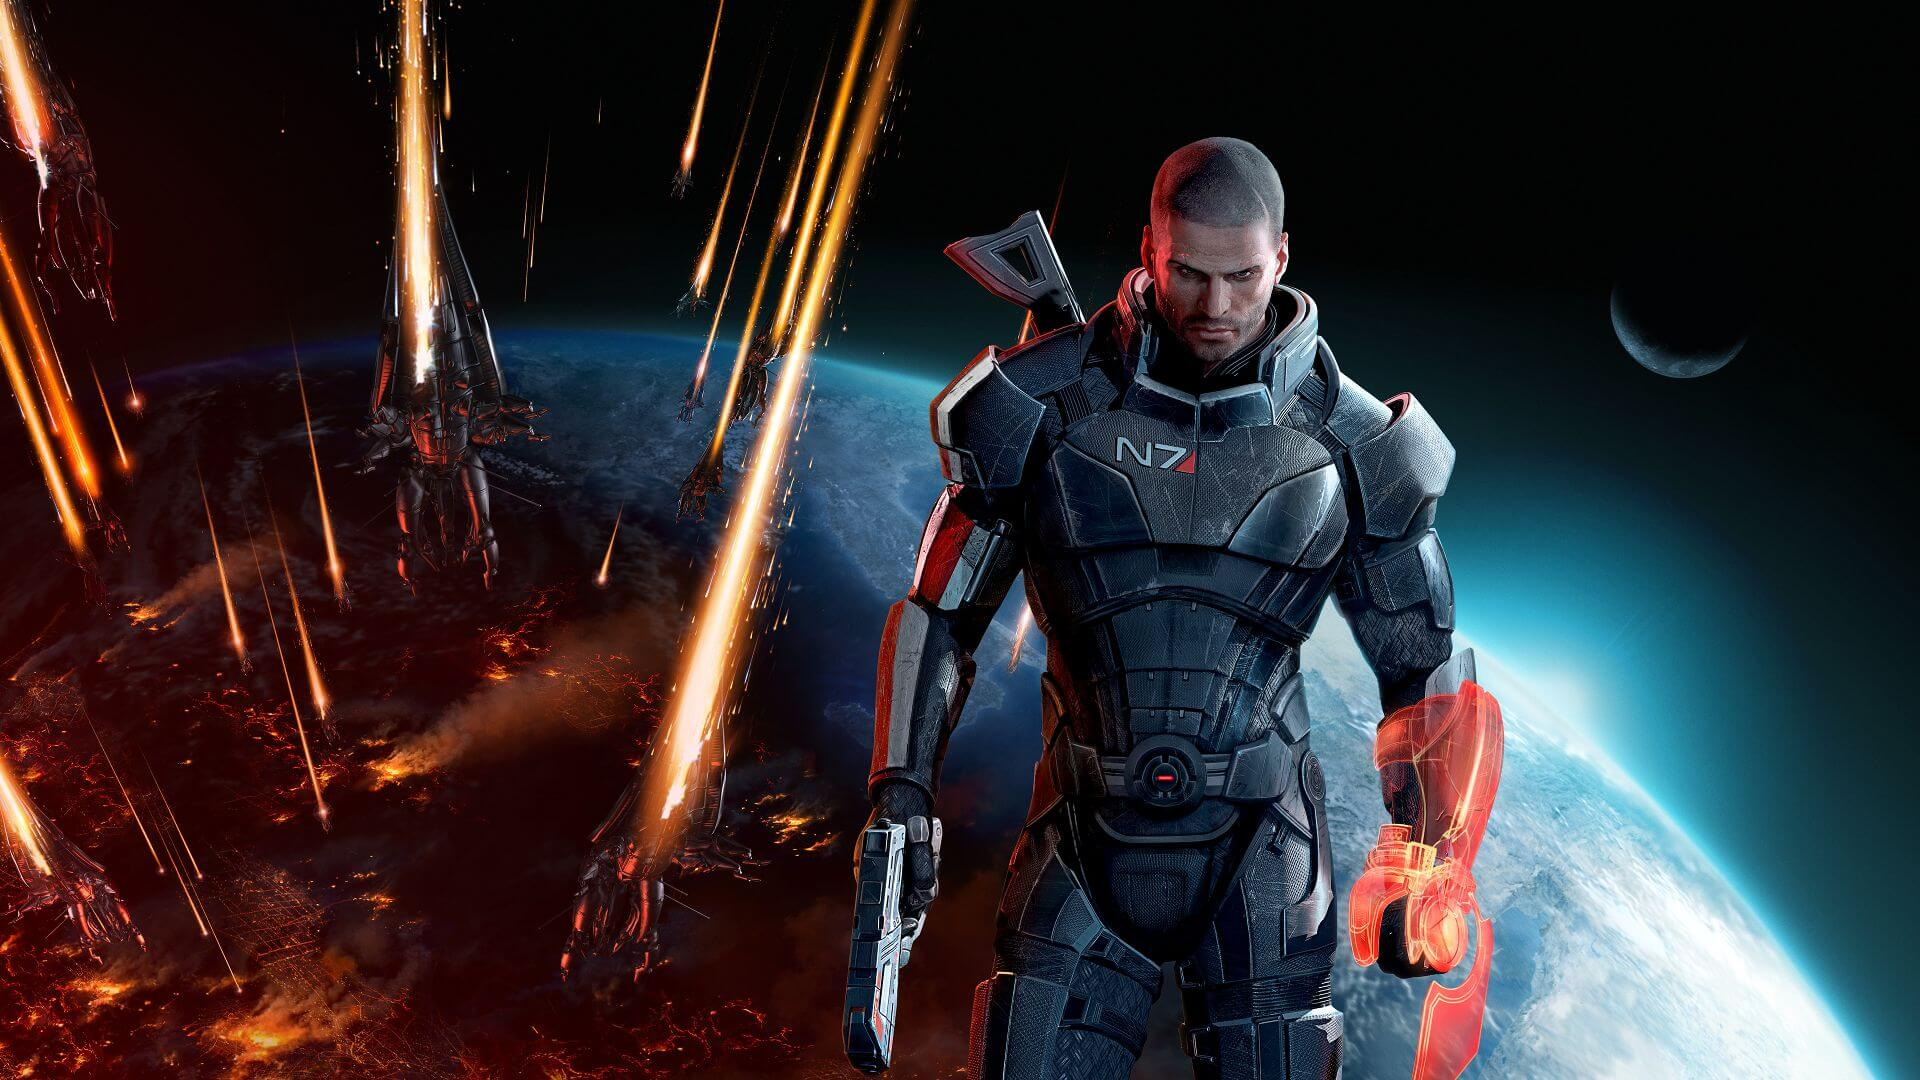 La trilogía de Mass Effect está disponible en PS4, Xbox One y Nintendo Switch.